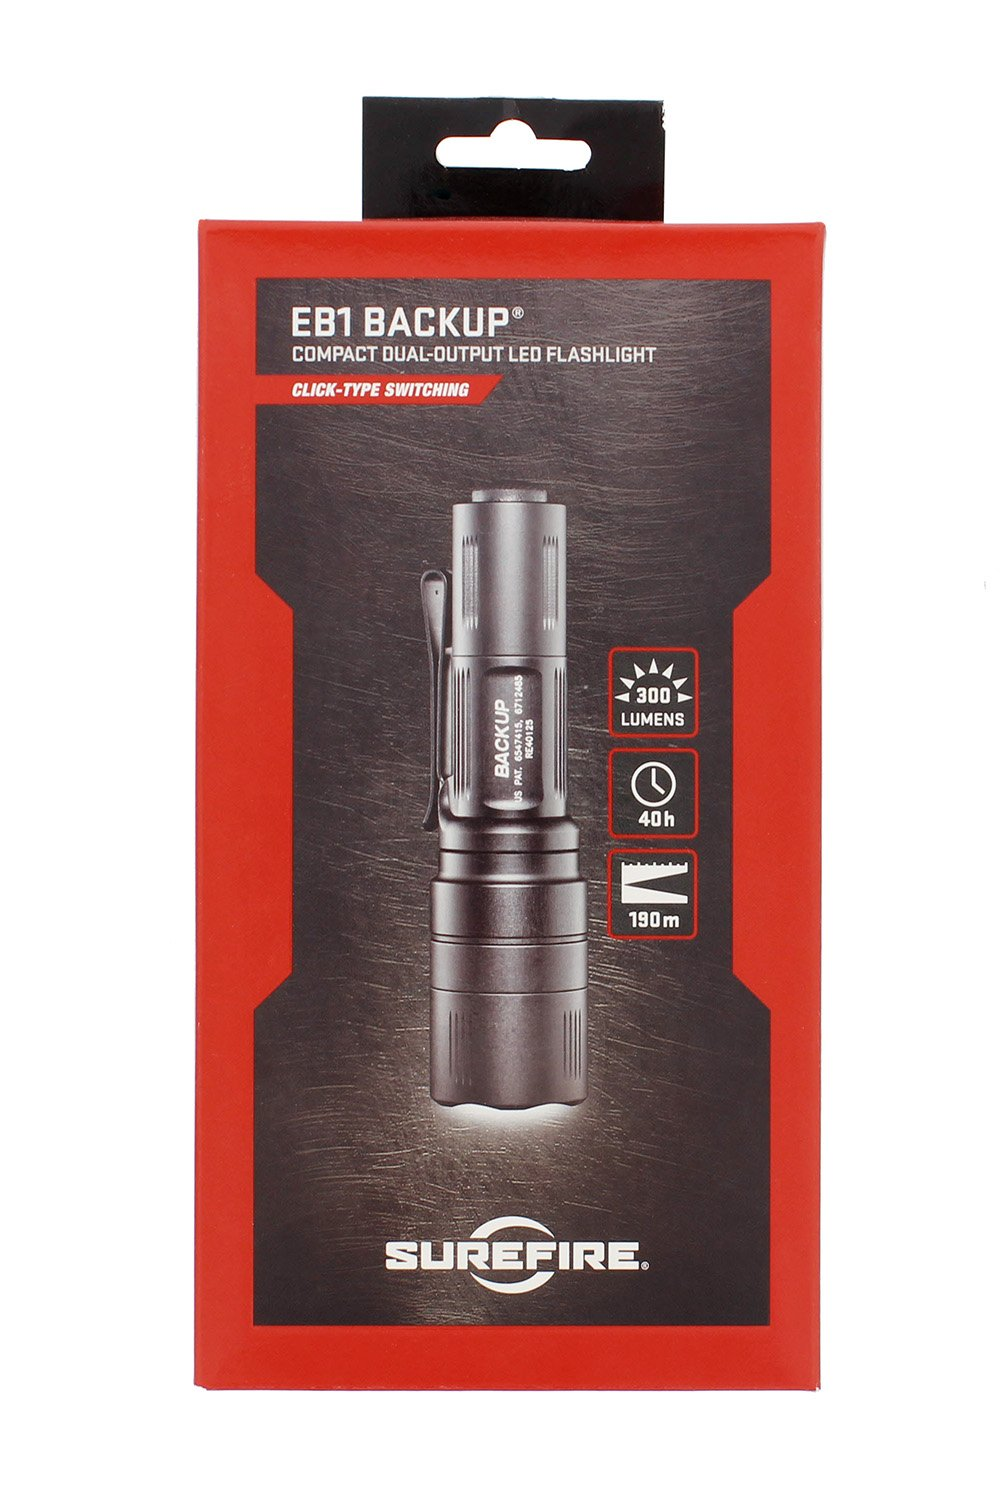 Surefire EB1C-B-BK Backup Dual-Output LED Flashlight by SureFire